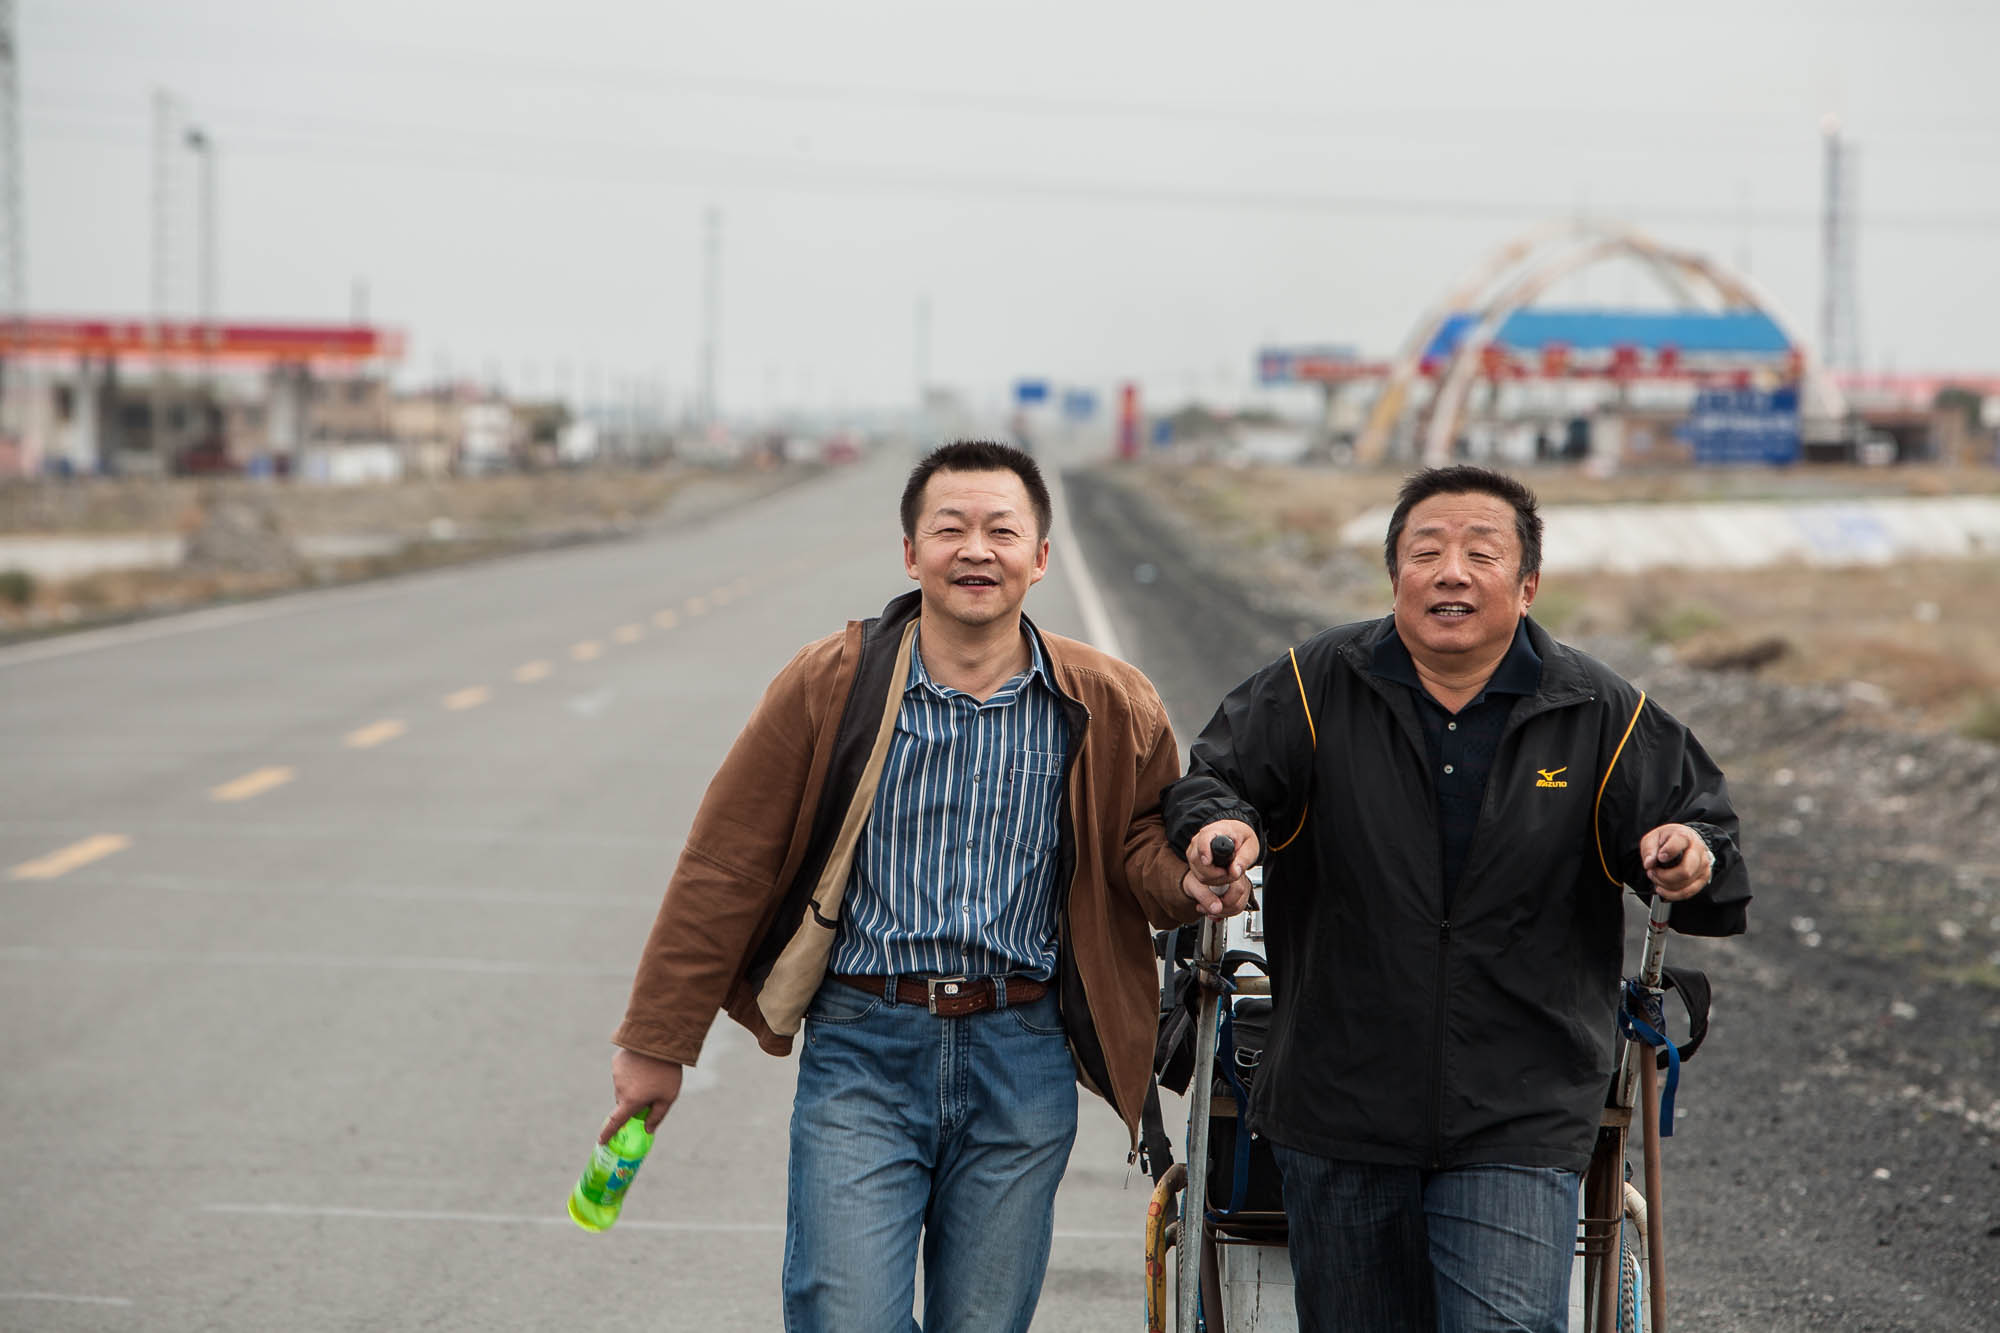 Brother Li and Brother Ma walked with me from Kuytun almost all the way to Wusu